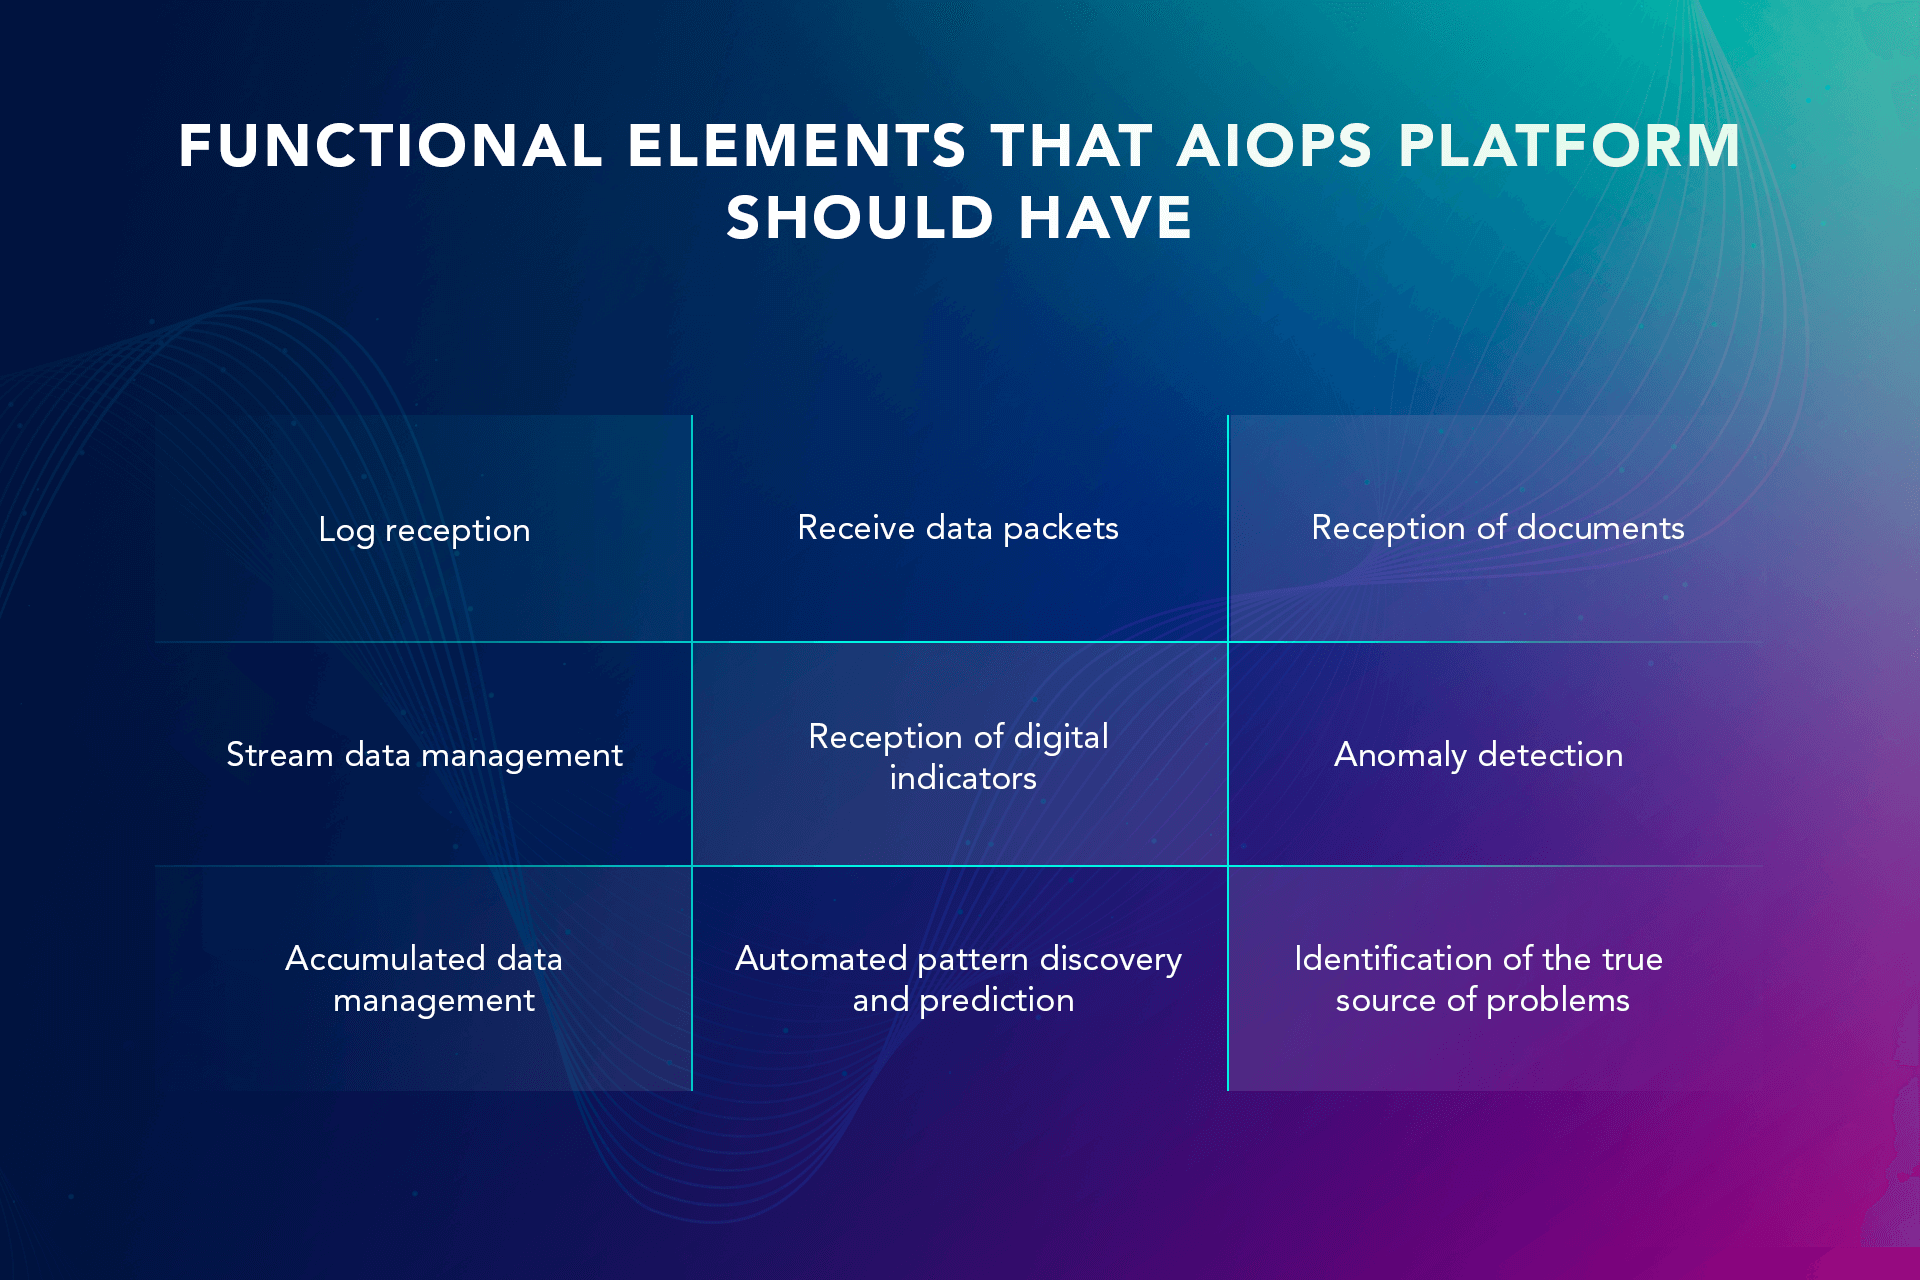 AIOps: AI for IT Operations